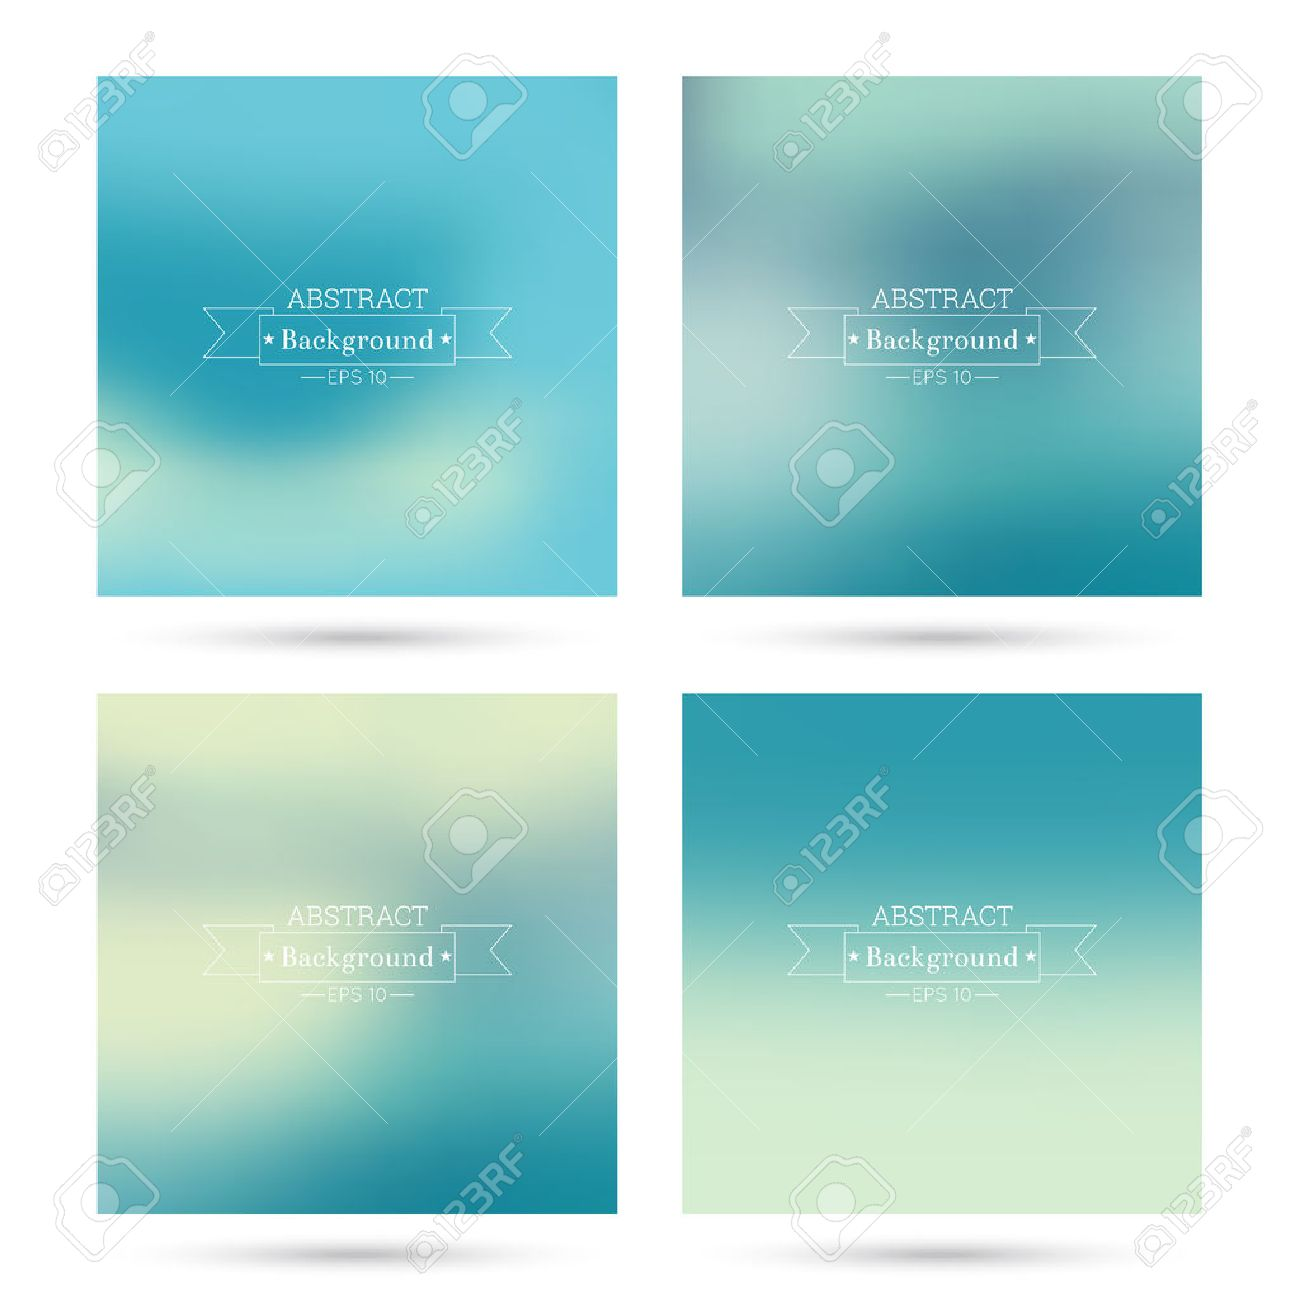 Set of vector colorful abstract backgrounds blurred. For mobile app, book cover, booklet, background, poster, web sites, annual reports. blue, green, turquoise, cream, yellow - 47067231